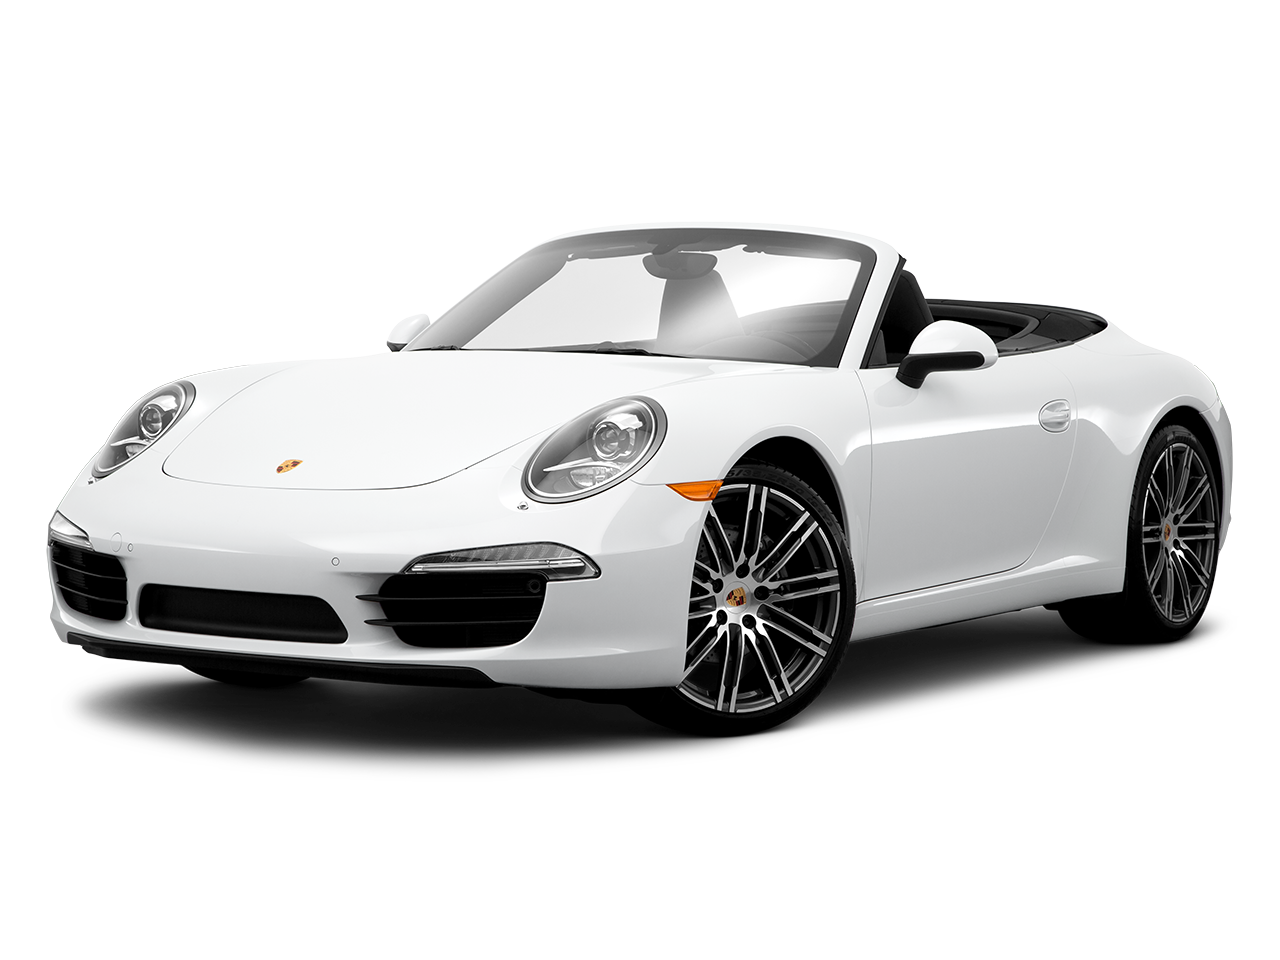 Porsche PNG images free download.